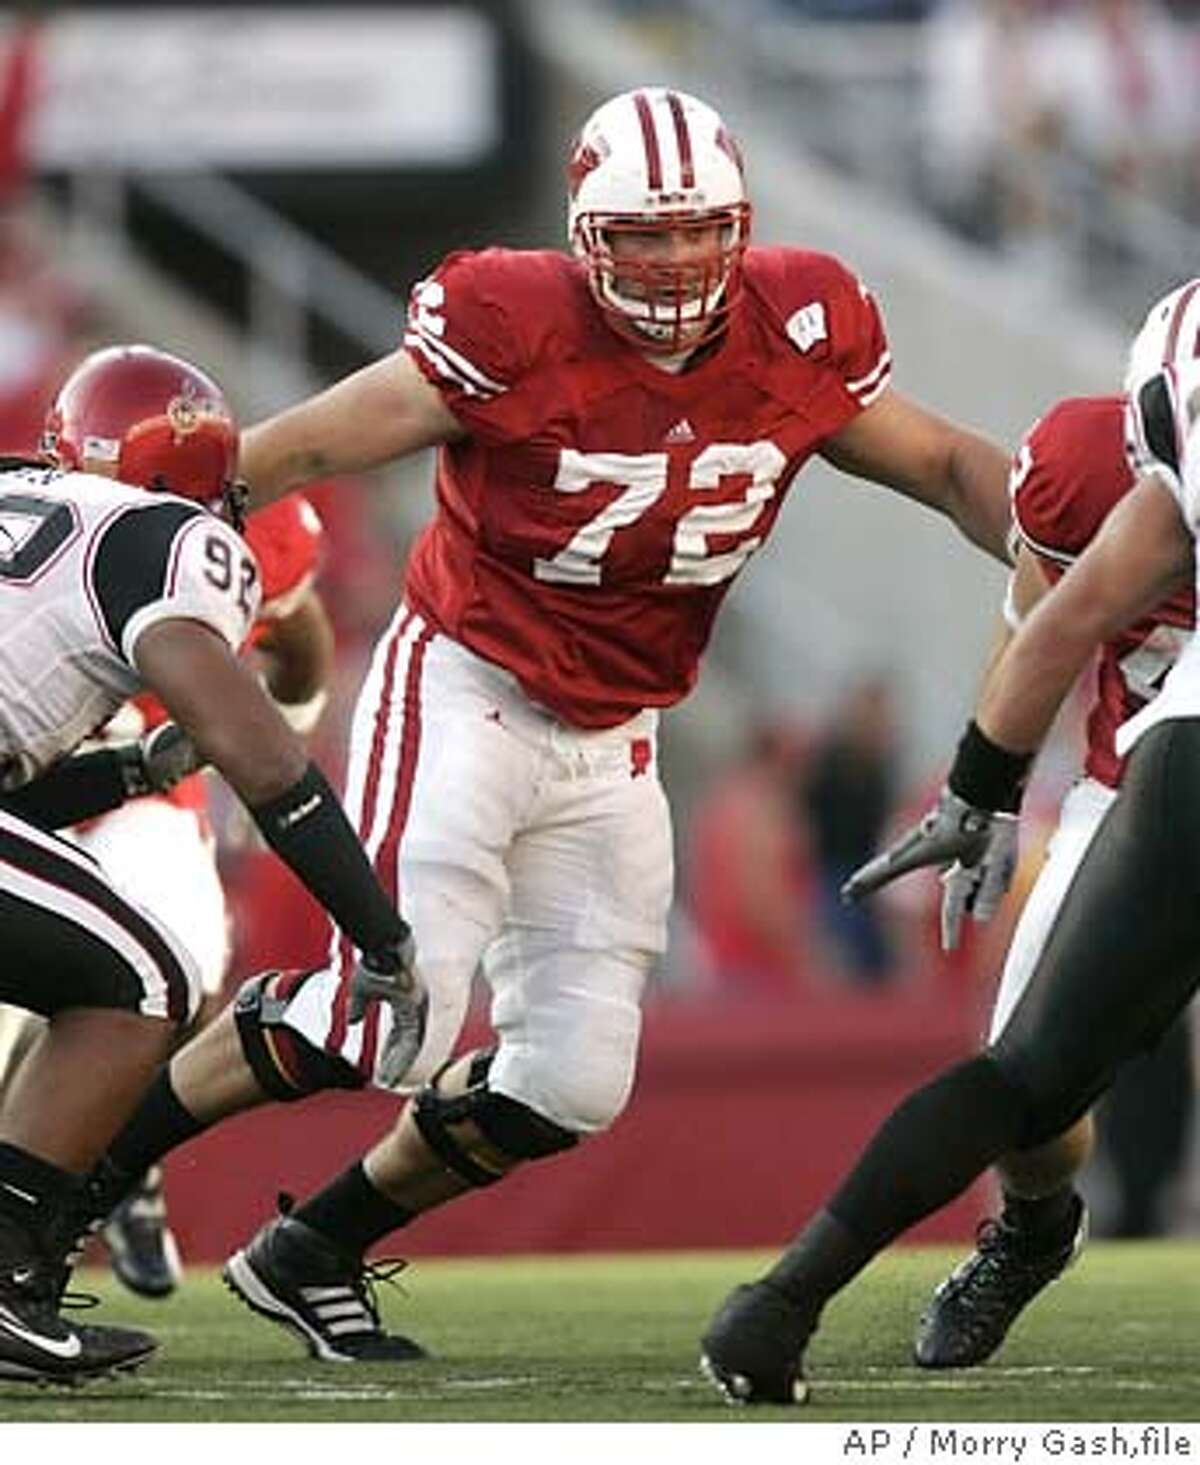 ** FILE ** Wisconsin offensive lineman Joe Thomas (72) looks to block during the second half of a football game against San Diego State Saturday, Sept. 16, 2006, in Madison, Wisc. (AP Photo/ Morry Gash,file) FOR USE AS DESIRED WITH NFL DRAFT STORIES. SEPT. 16, 2006 FILE PHOTO. EFE OUT